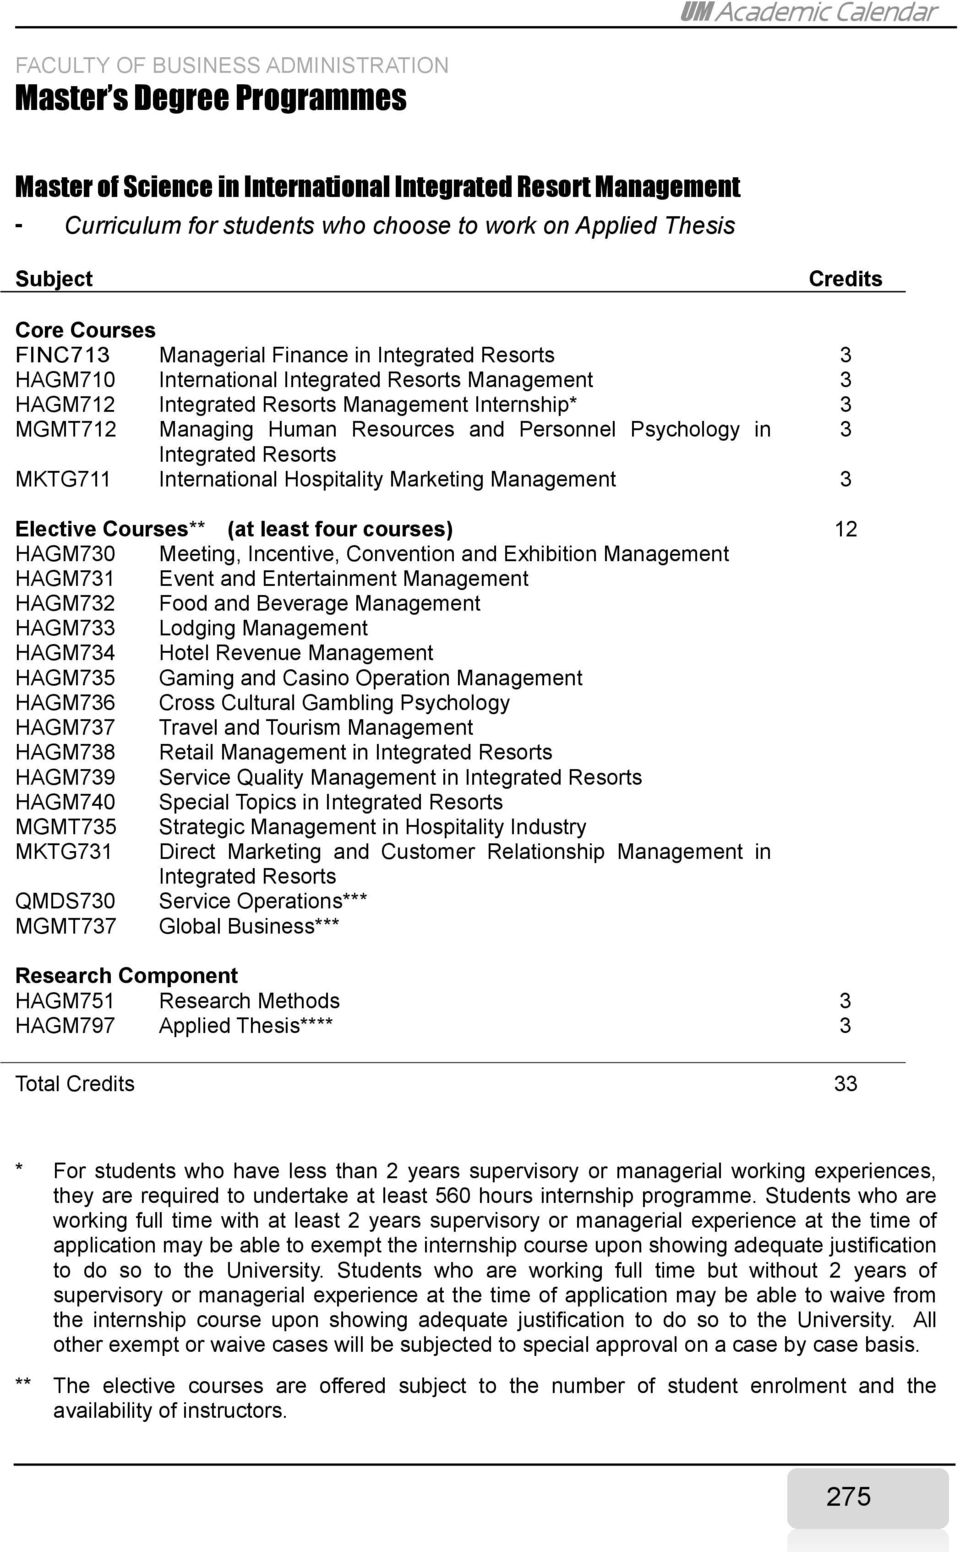 Internship* Managing Human Resources and Personnel Psychology in Integrated Resorts International Hospitality Marketing Management 3 3 3 3 3 Elective Courses** (at least four courses) 12 HAGM730